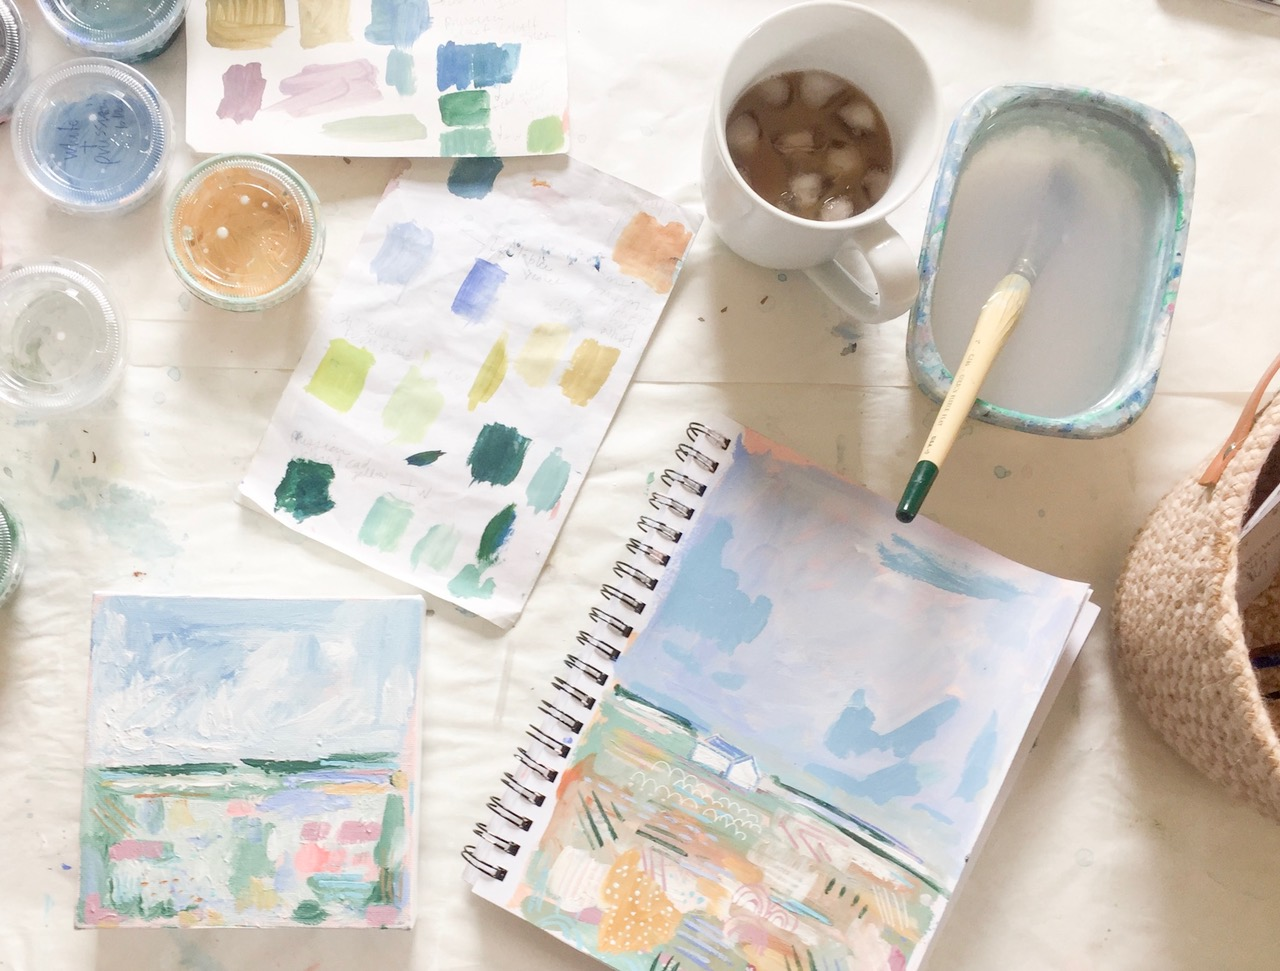 Daily painting essentials: Iced coffee in the summer, paints, color charts and sketchbook